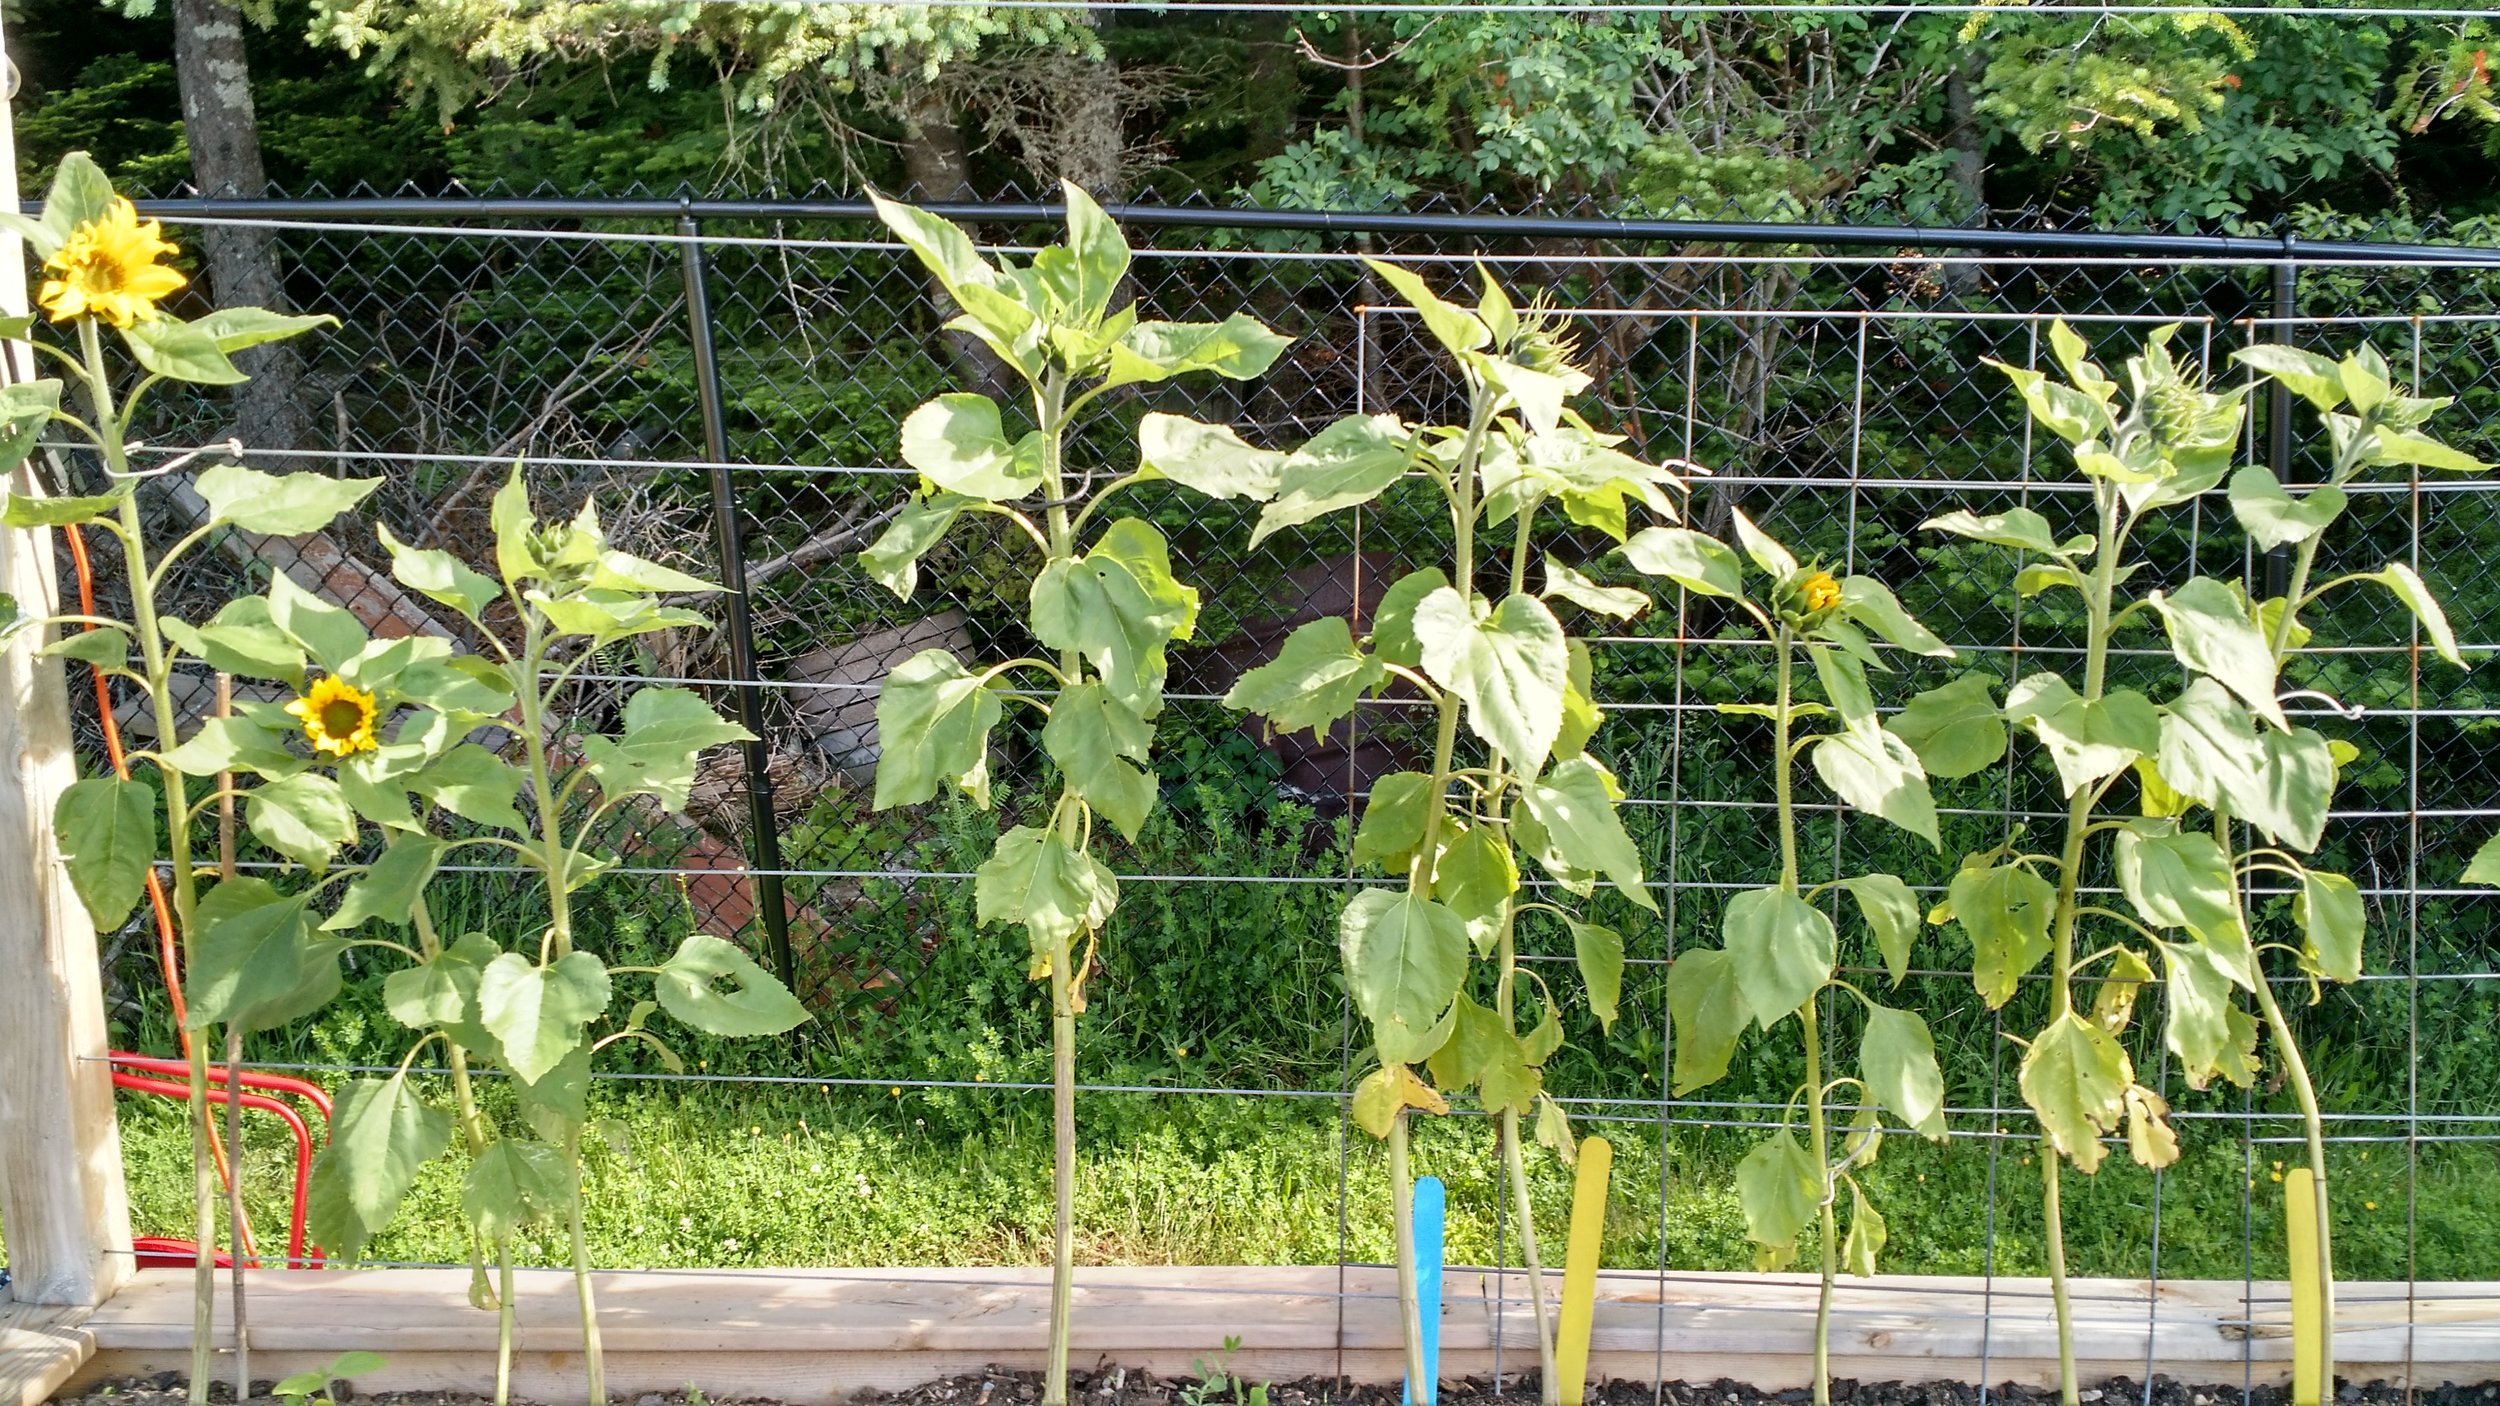 The sunflowers were grown from seed and started their life inside. They have been in this spot in the garden since the long weekend in May and just 2 days ago, started blooming!